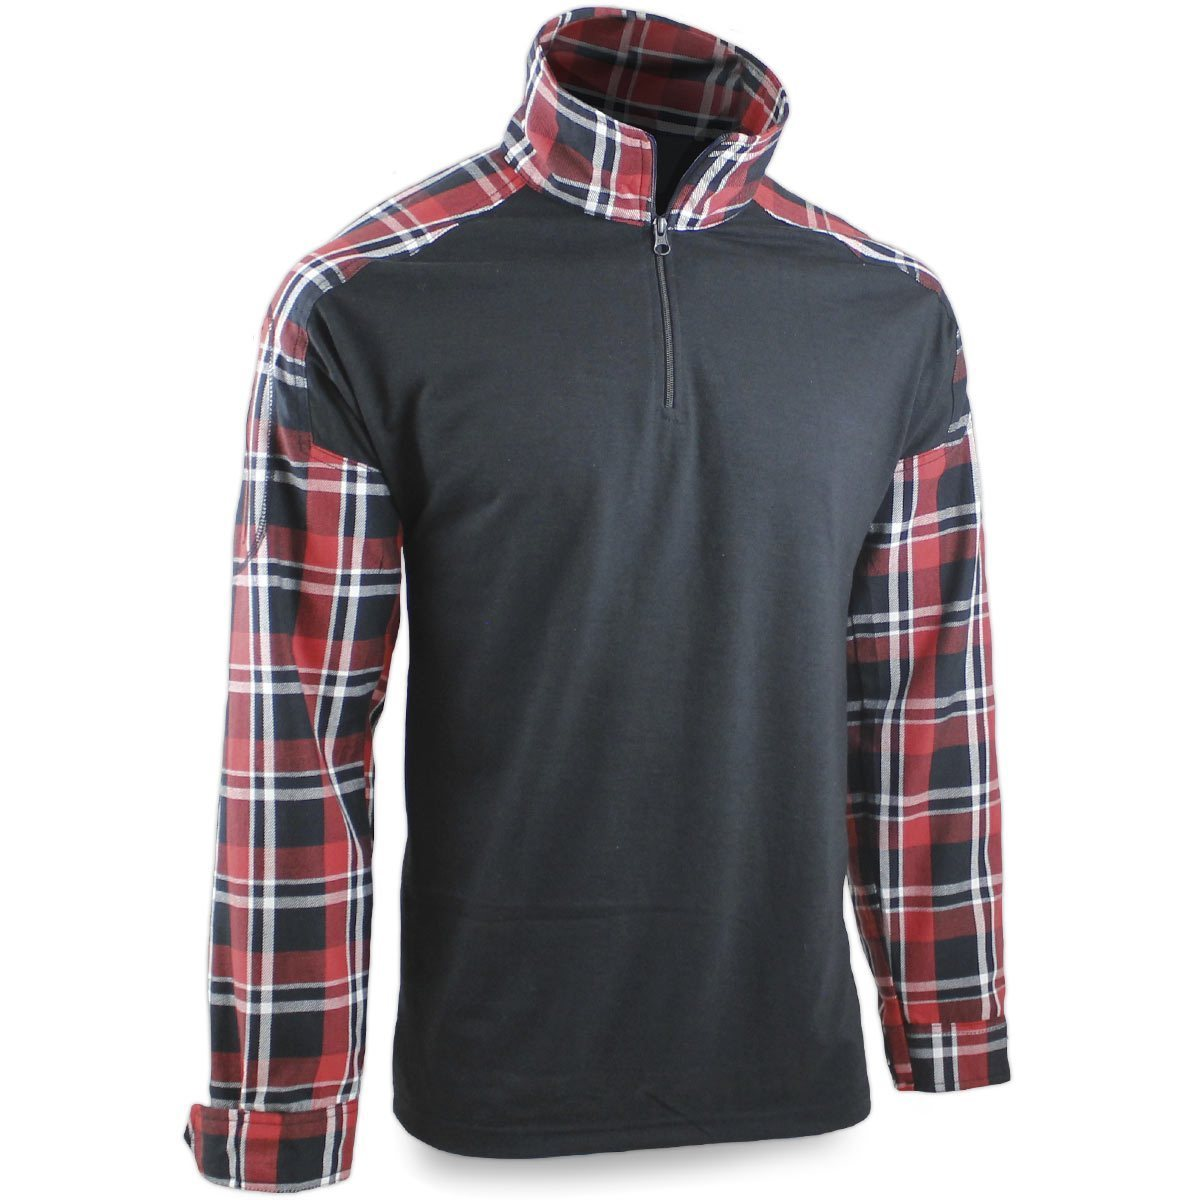 Bulldog LumberTac Combat Shirt Red/Black | Bulldog Tactical Gear